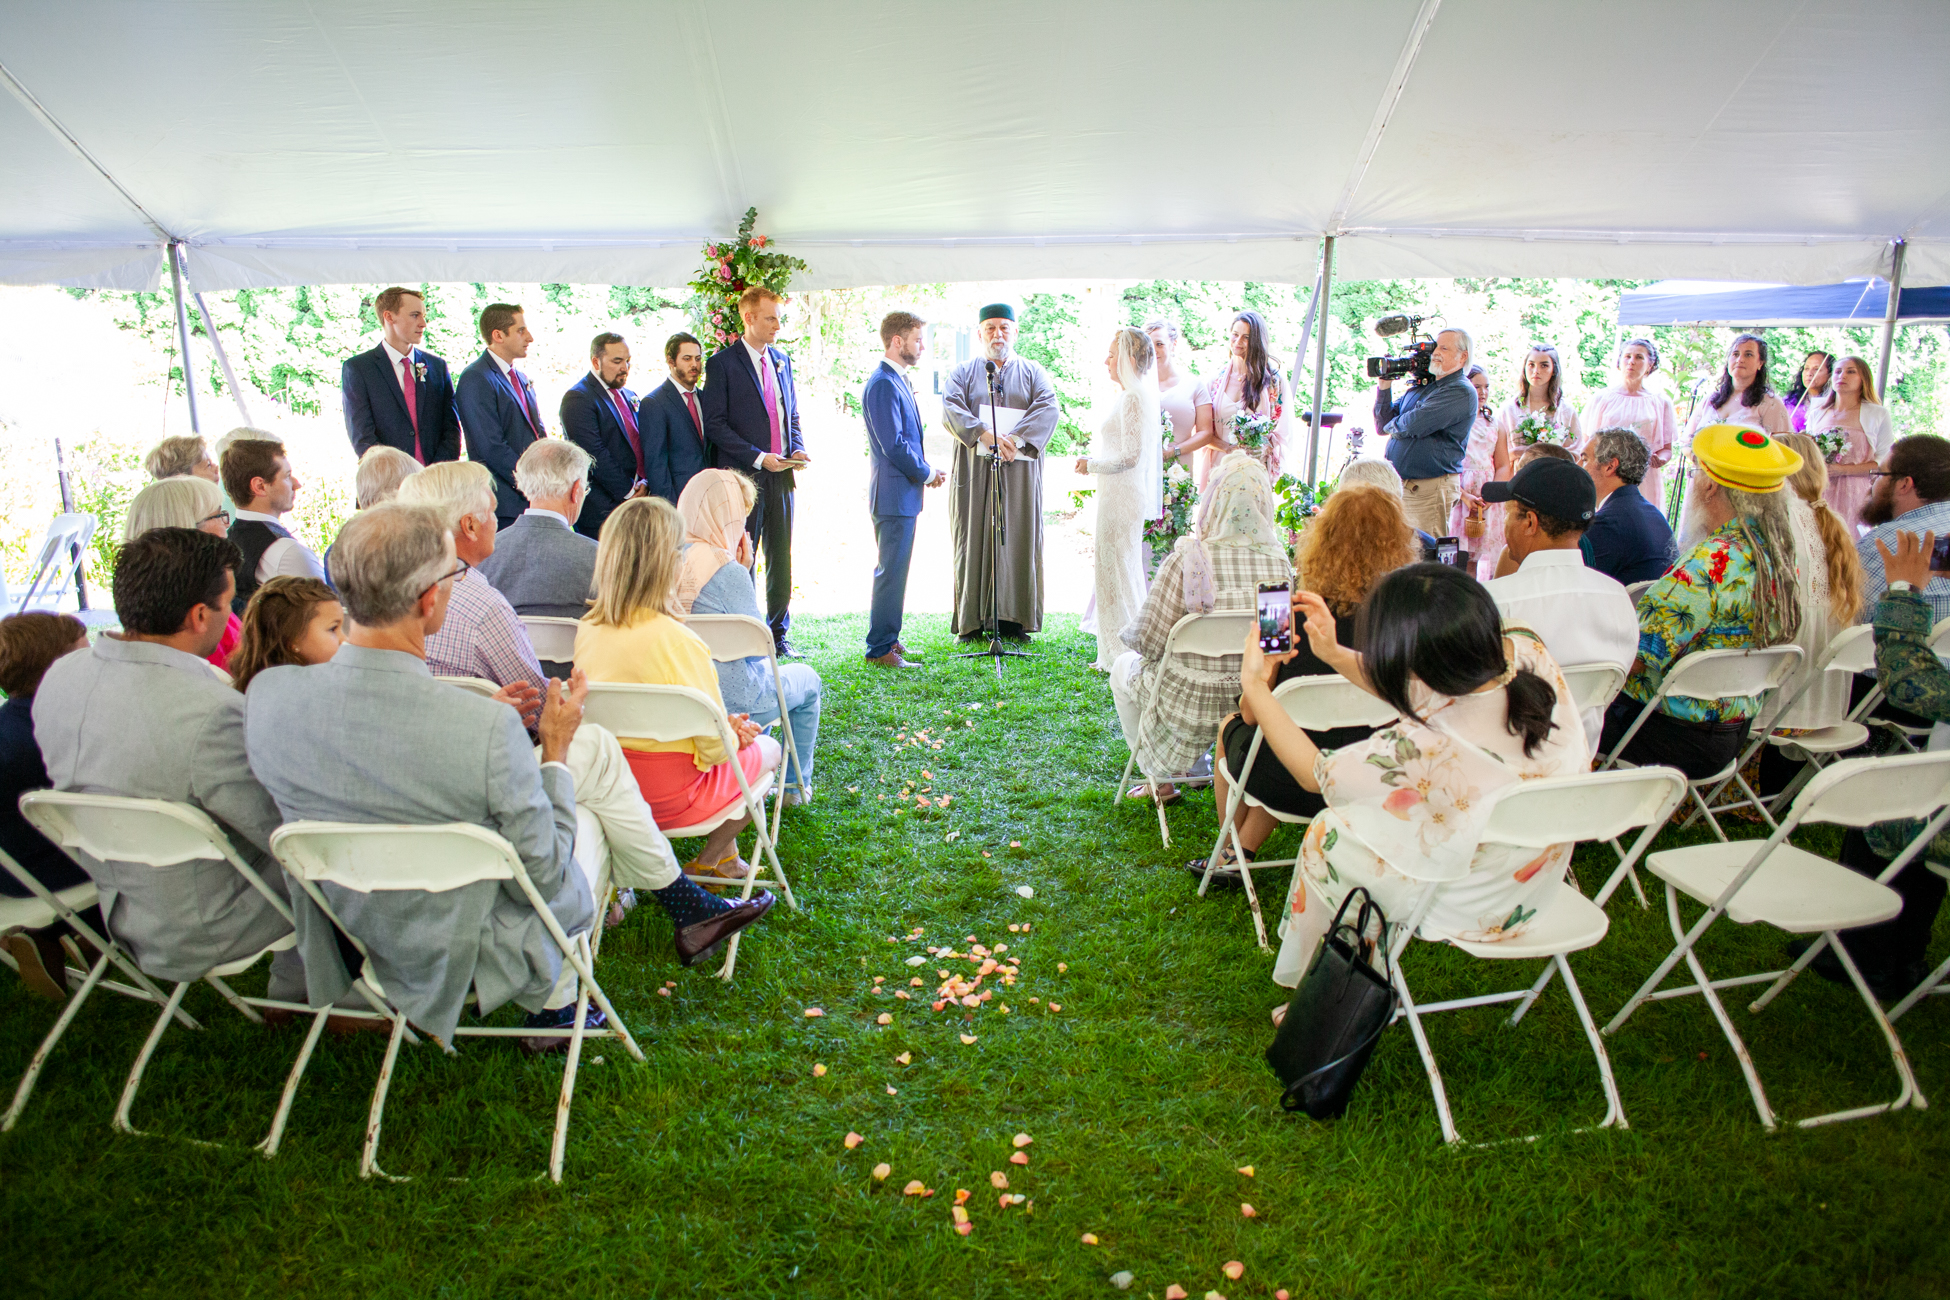 MaryFatimah and Noah's Summer Wedding at Bawa Muhaiyaddeen Fellowship Farm by Avi Loren Fox LLC-19.jpg